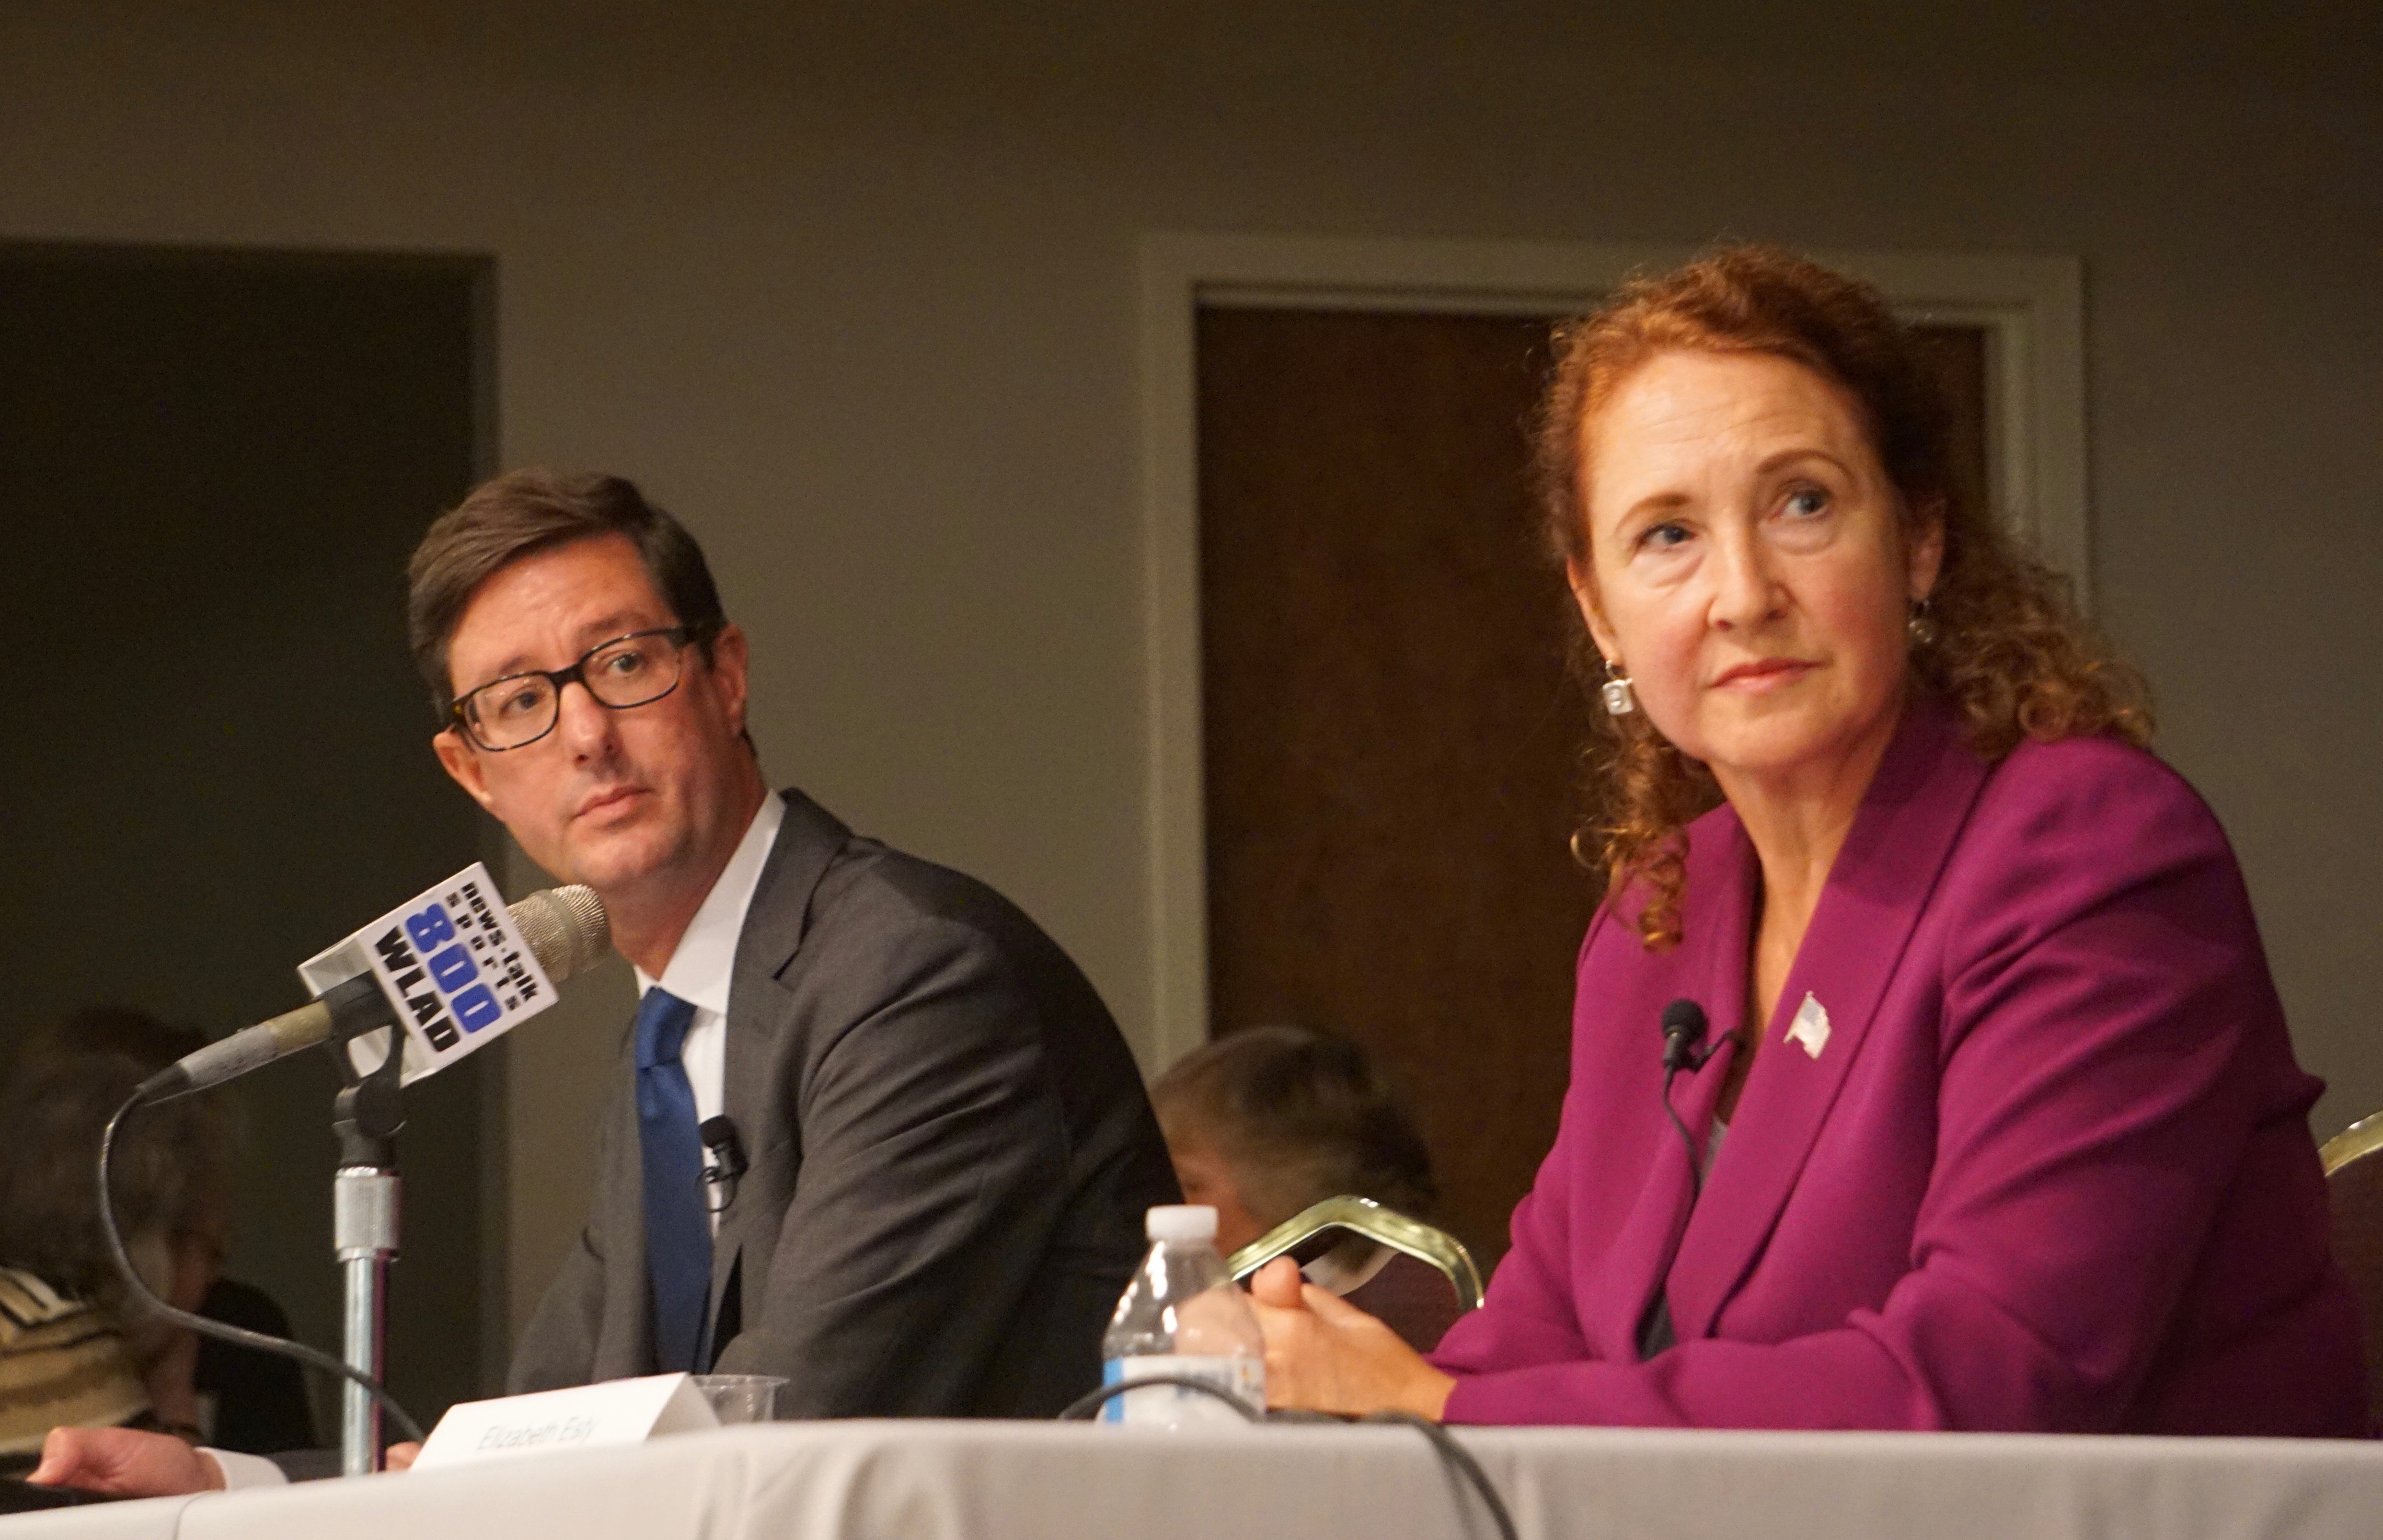 Esty and Cope disagree, if amiably, on gun control and climate change